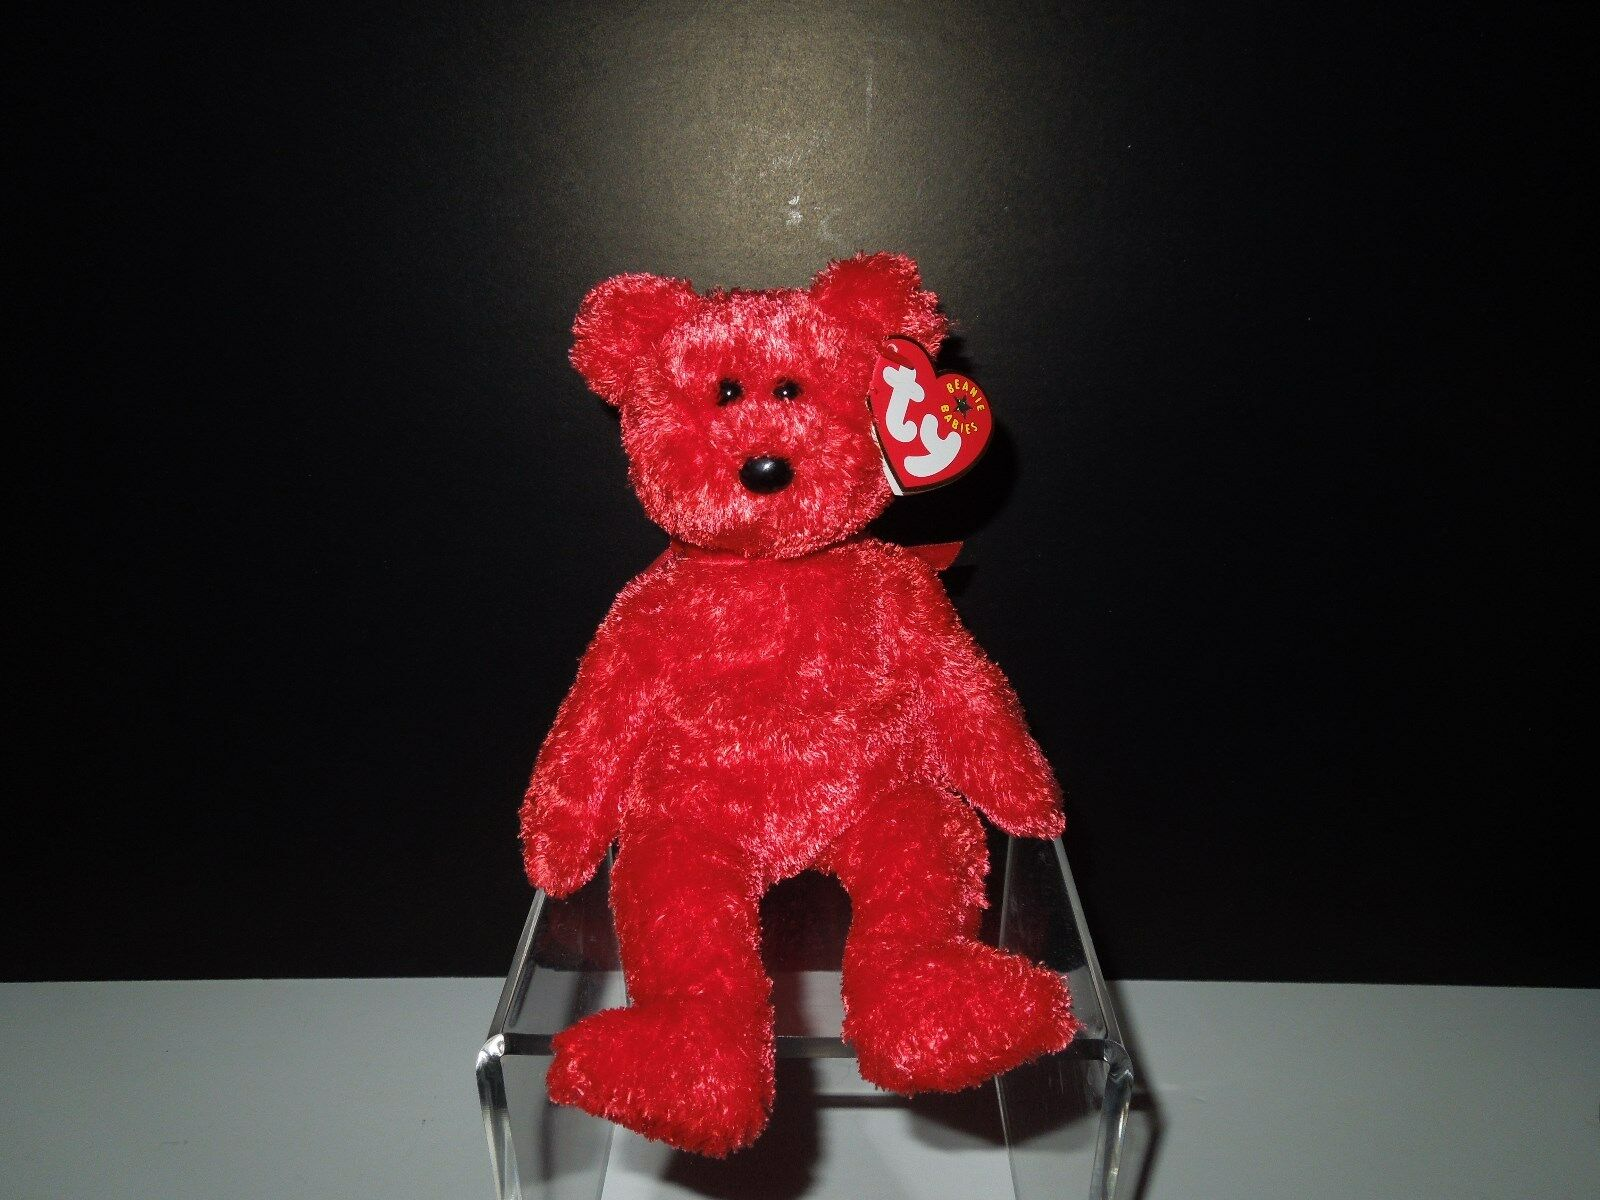 MNWT Retired 2001 Ty Ty Ty Beanie Baby Sizzle the Bear DOB  August 25, 2001 57c456